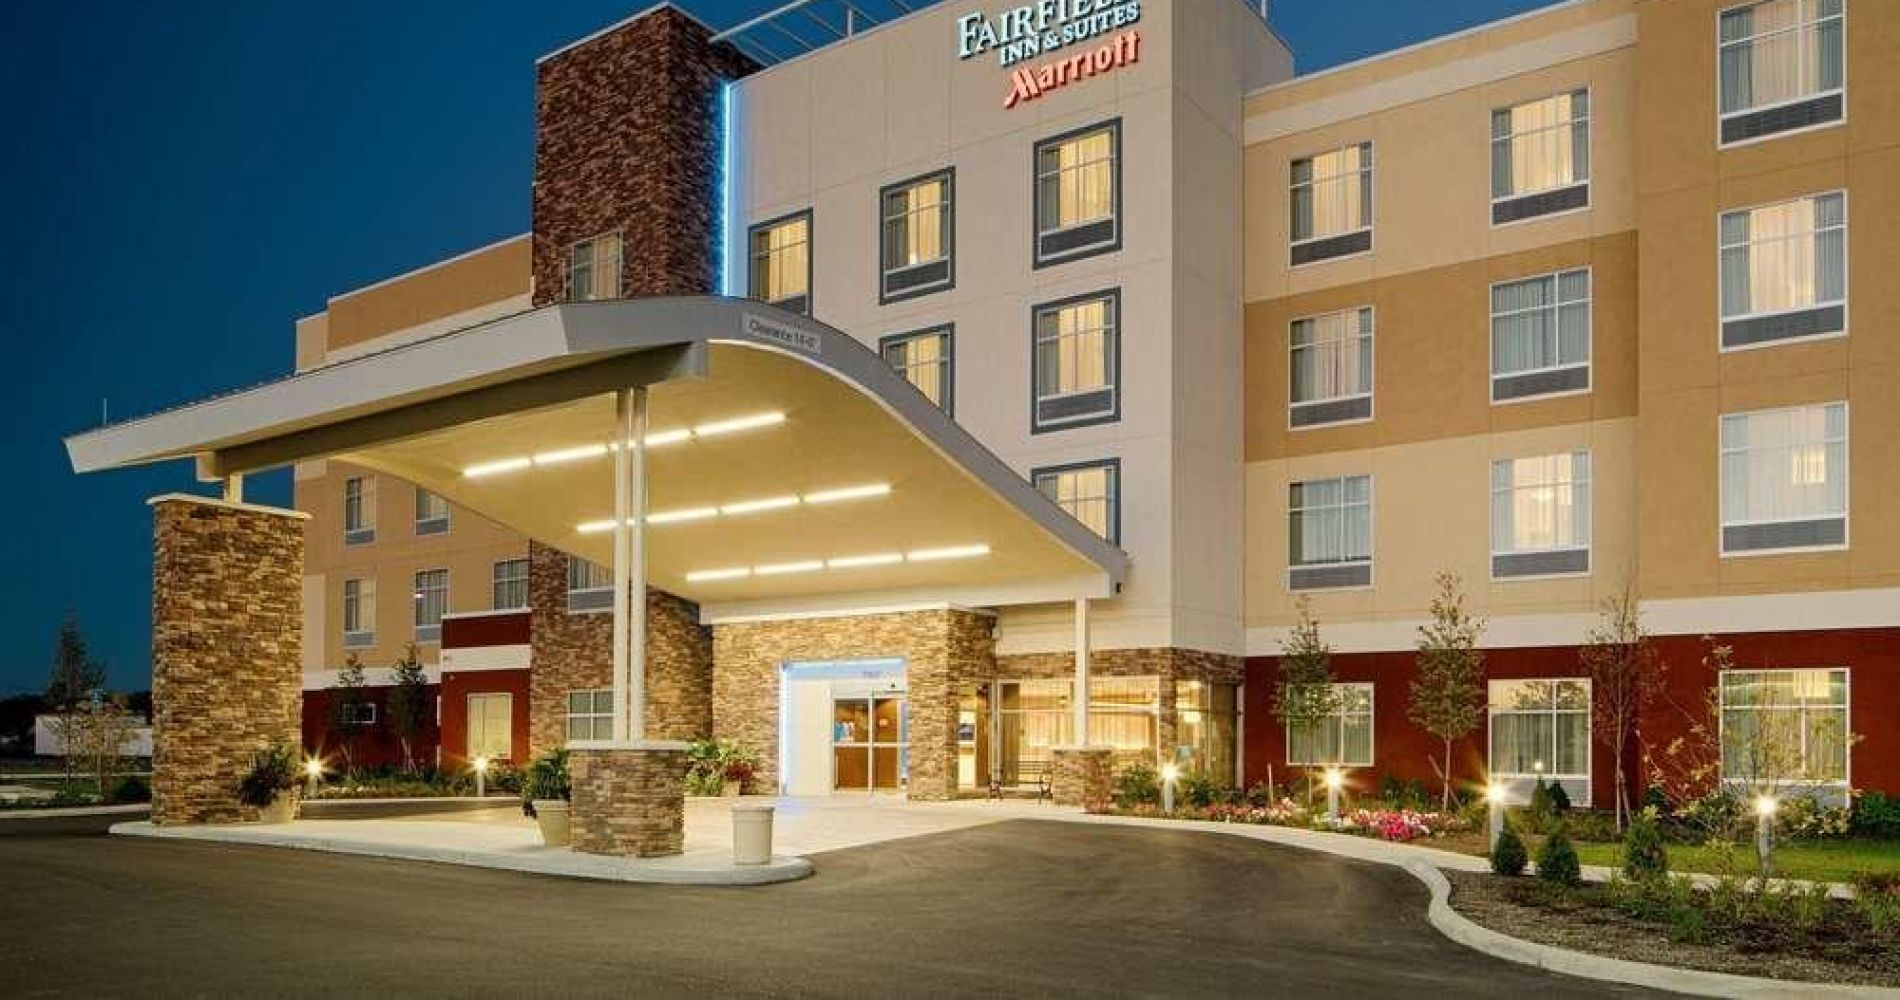 Fairfield Inn & Suites by Marriott Columbus Dublin